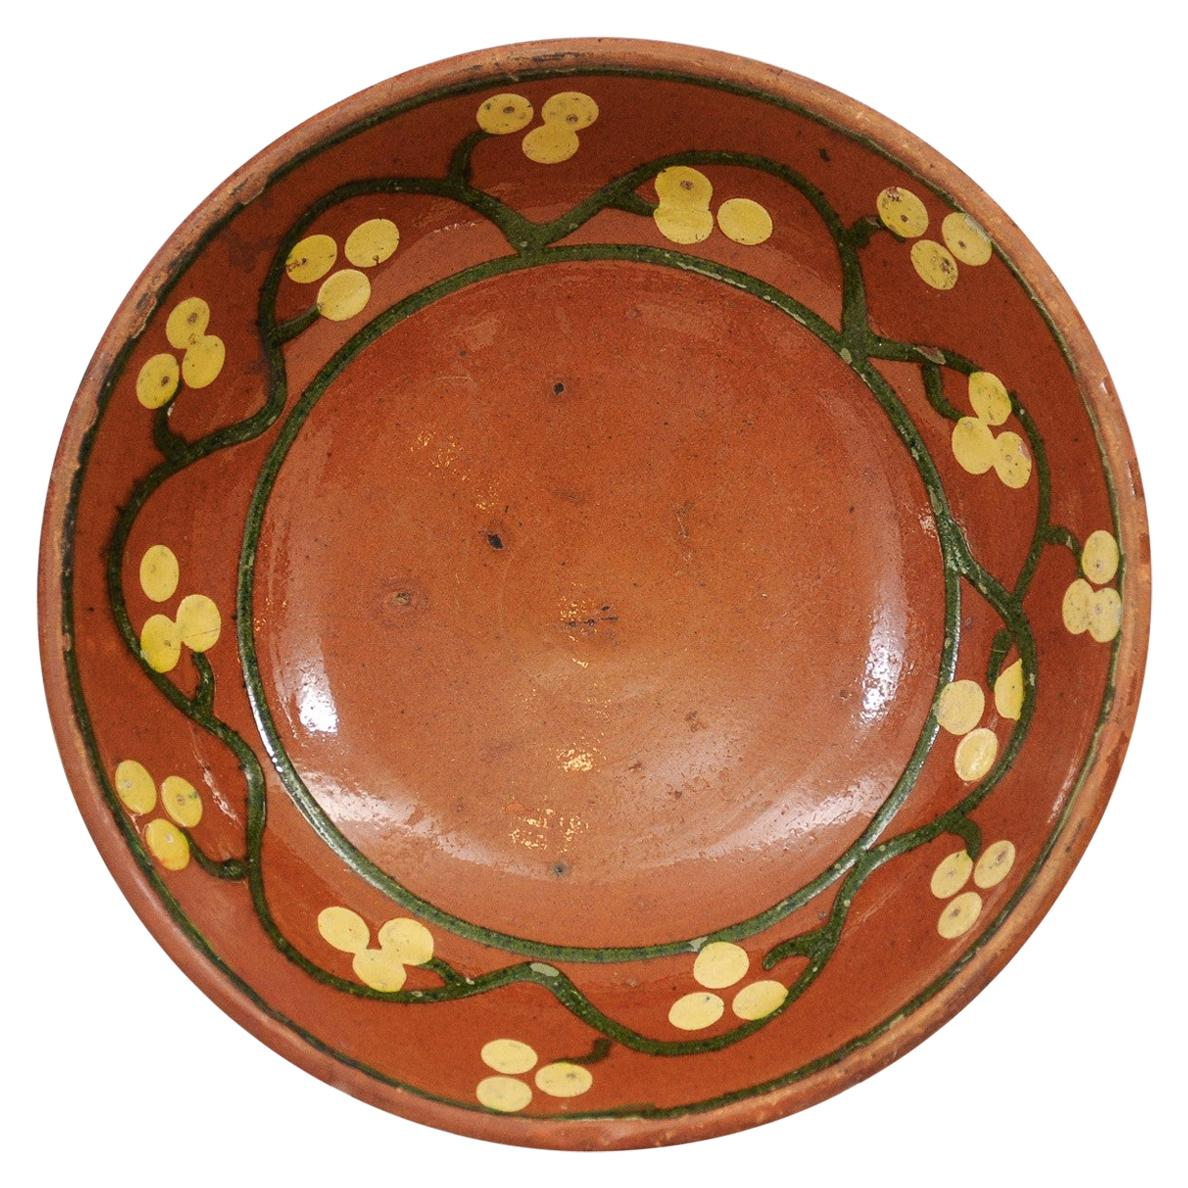 Rustic 19th Century French Fruit and Vegetable Pottery Bowl with Rust Glaze